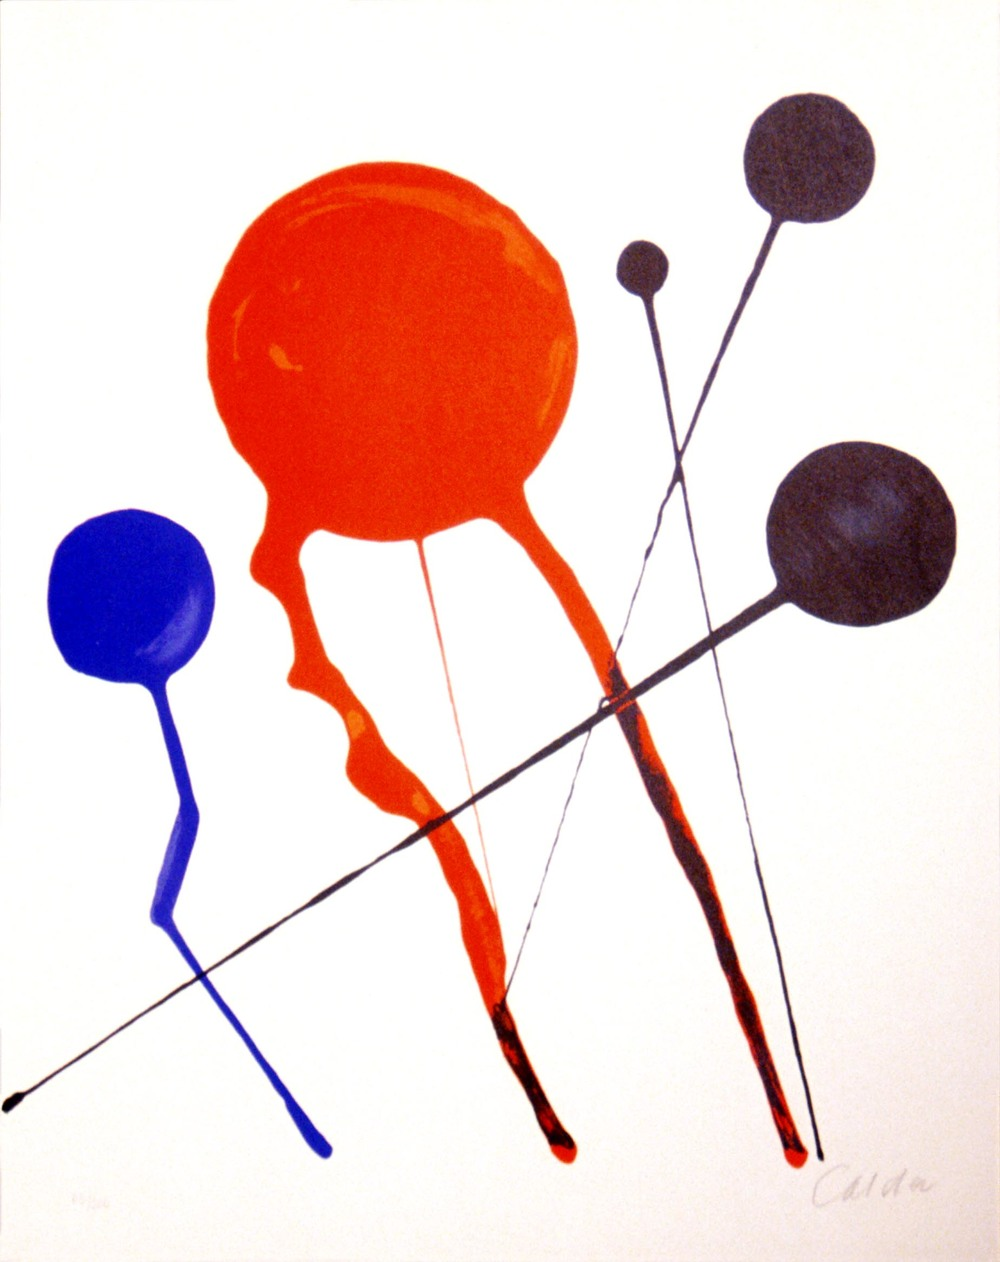 Alexander Calder, Composition, n.d., Lithograph (65/100), Gift of the Estate of Earleen G. Field, Polk Museum of Art Permanent Collection 2001.11.4